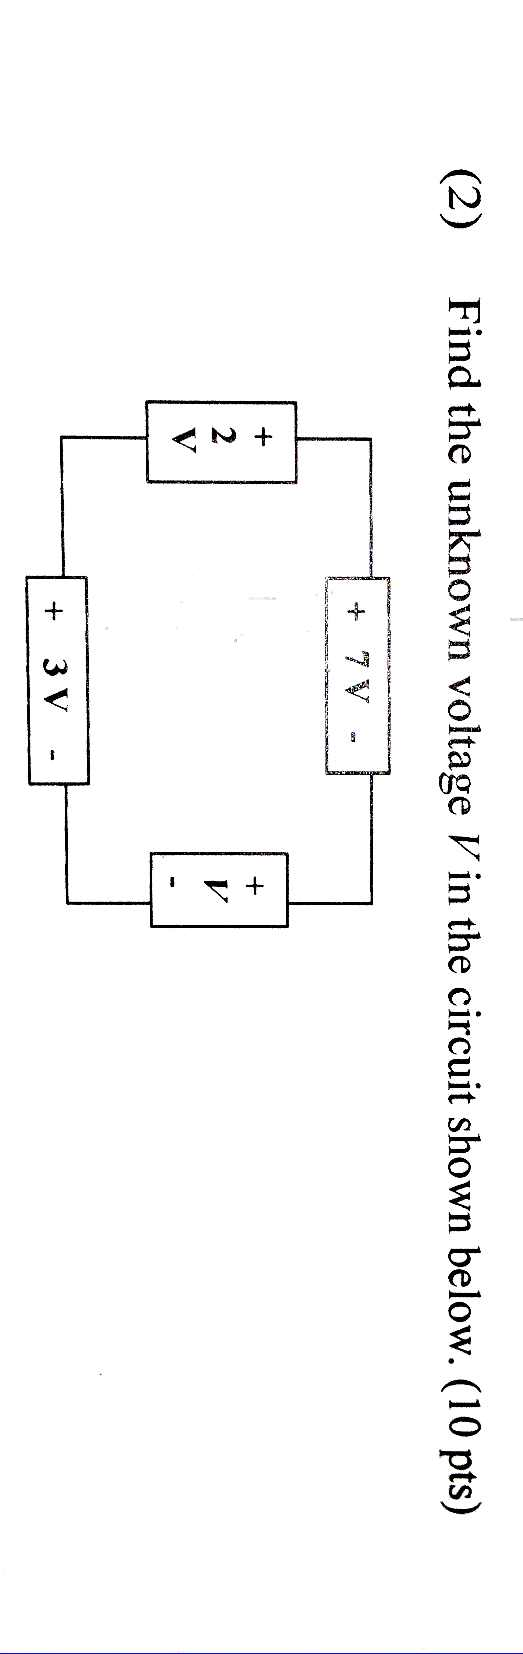 Find the unknown voltage V in the circuit shown be